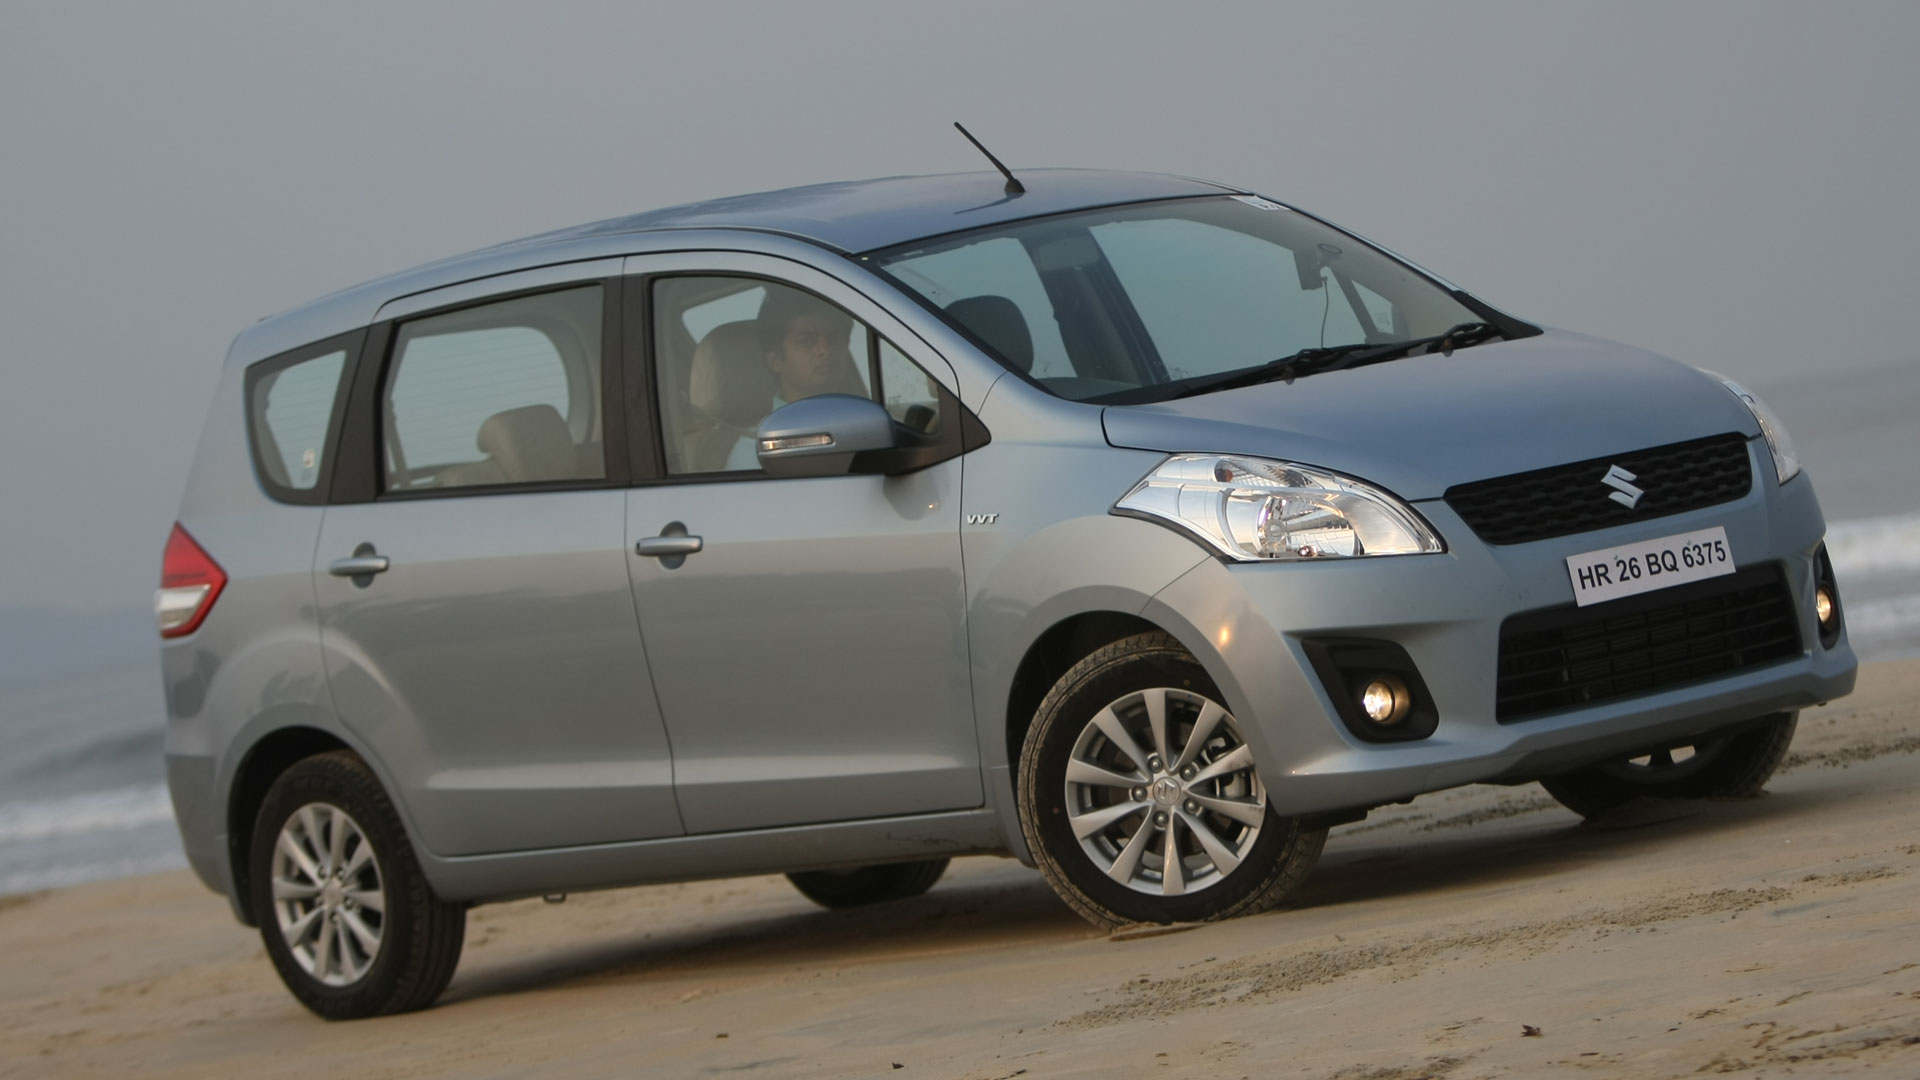 Maruti Suzuki Ertiga 2015 Price Mileage Reviews Specification Gallery Overdrive